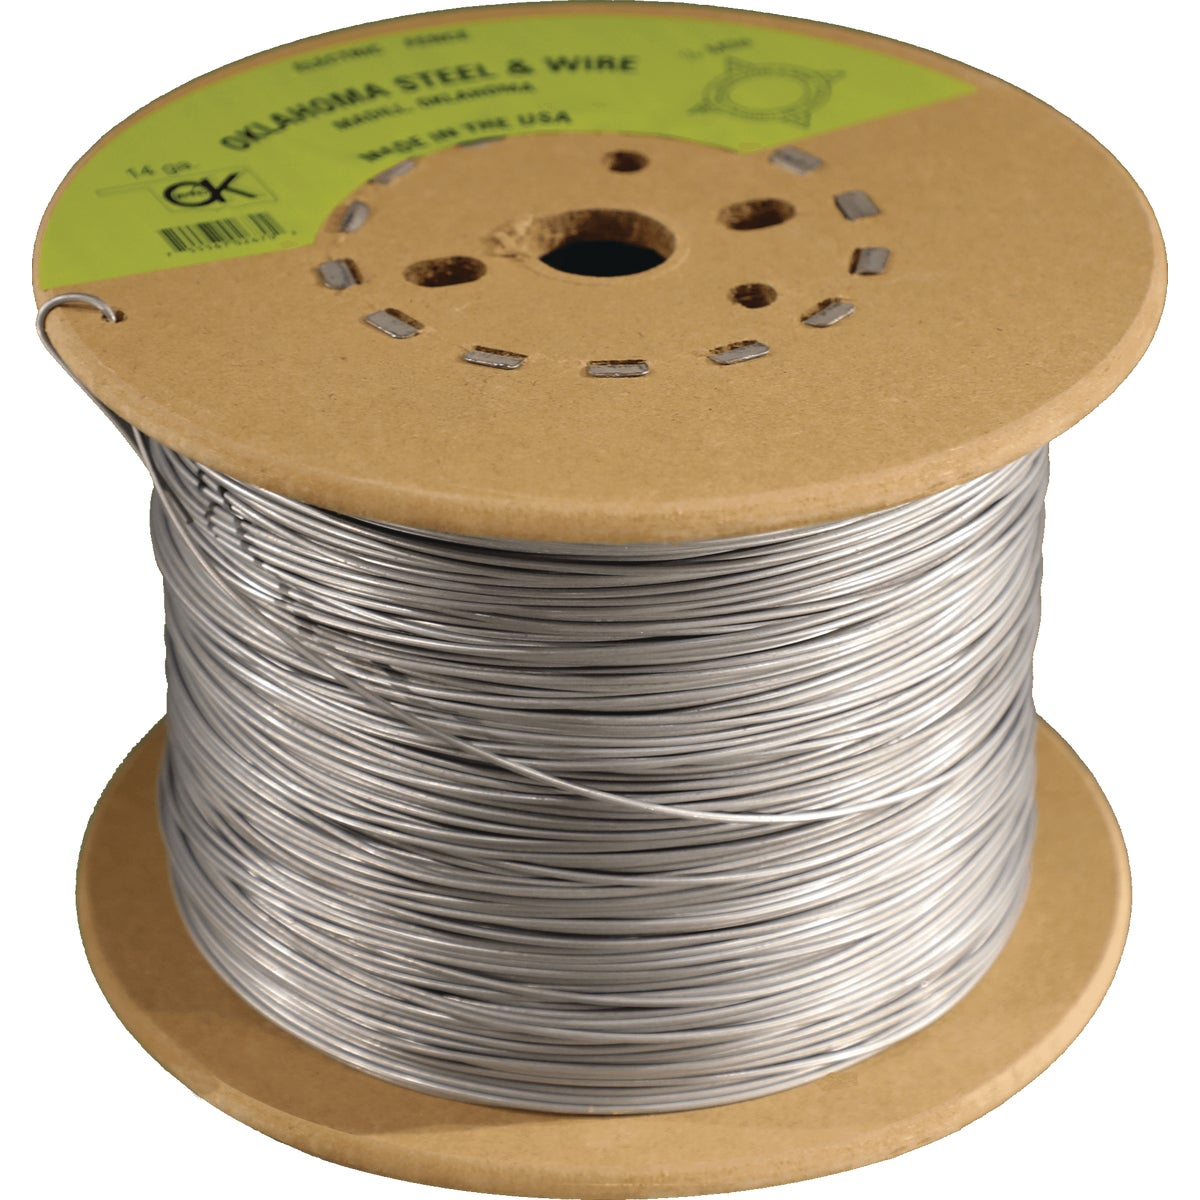 17G 1/4M ELC FENCE WIRE - 119752 by Bekaert Corp